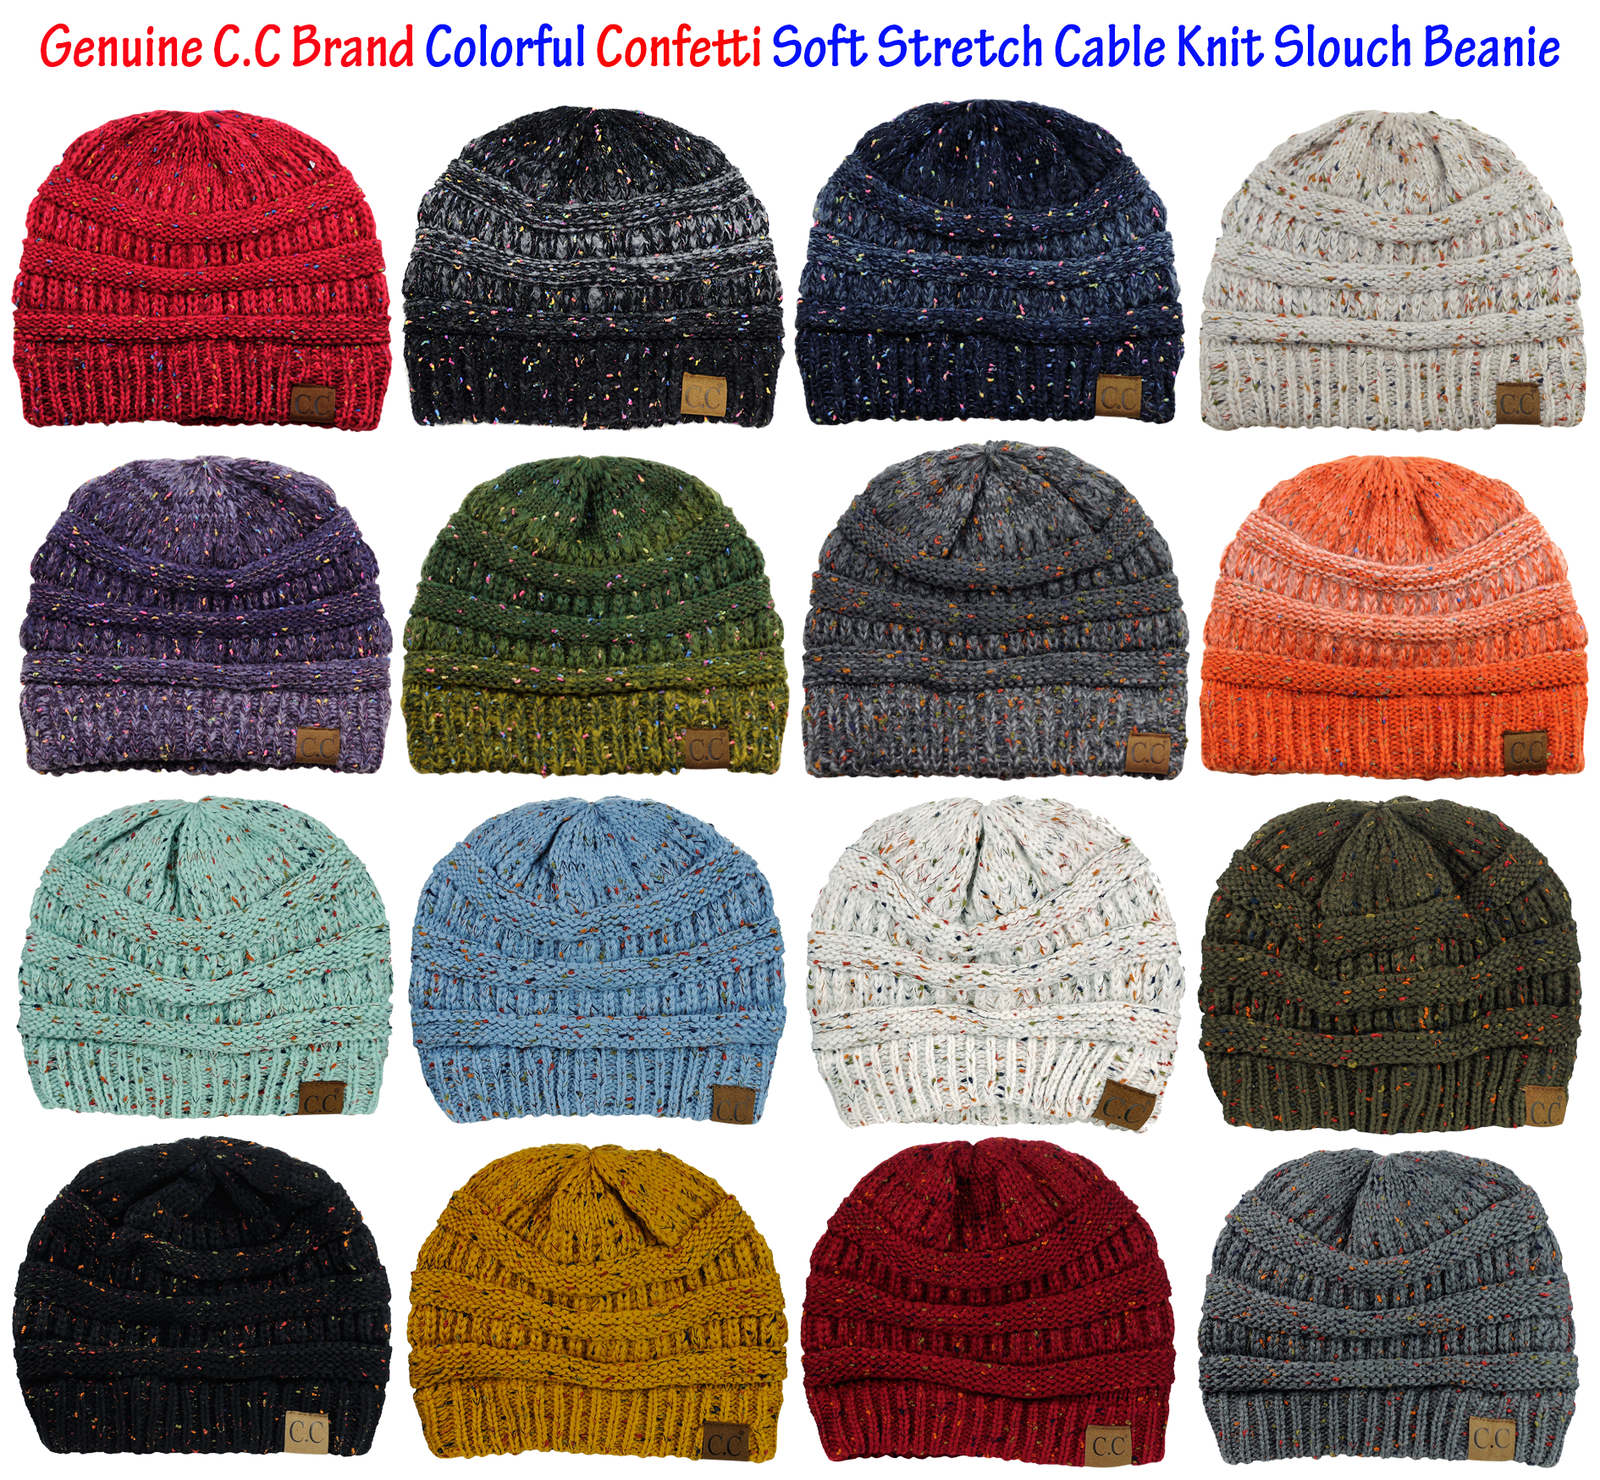 cad0a05cb4c97 C.c Unisex Colorful Confetti Soft Stretch Cable Knit Beanie Skull Cap -  Rust for sale online